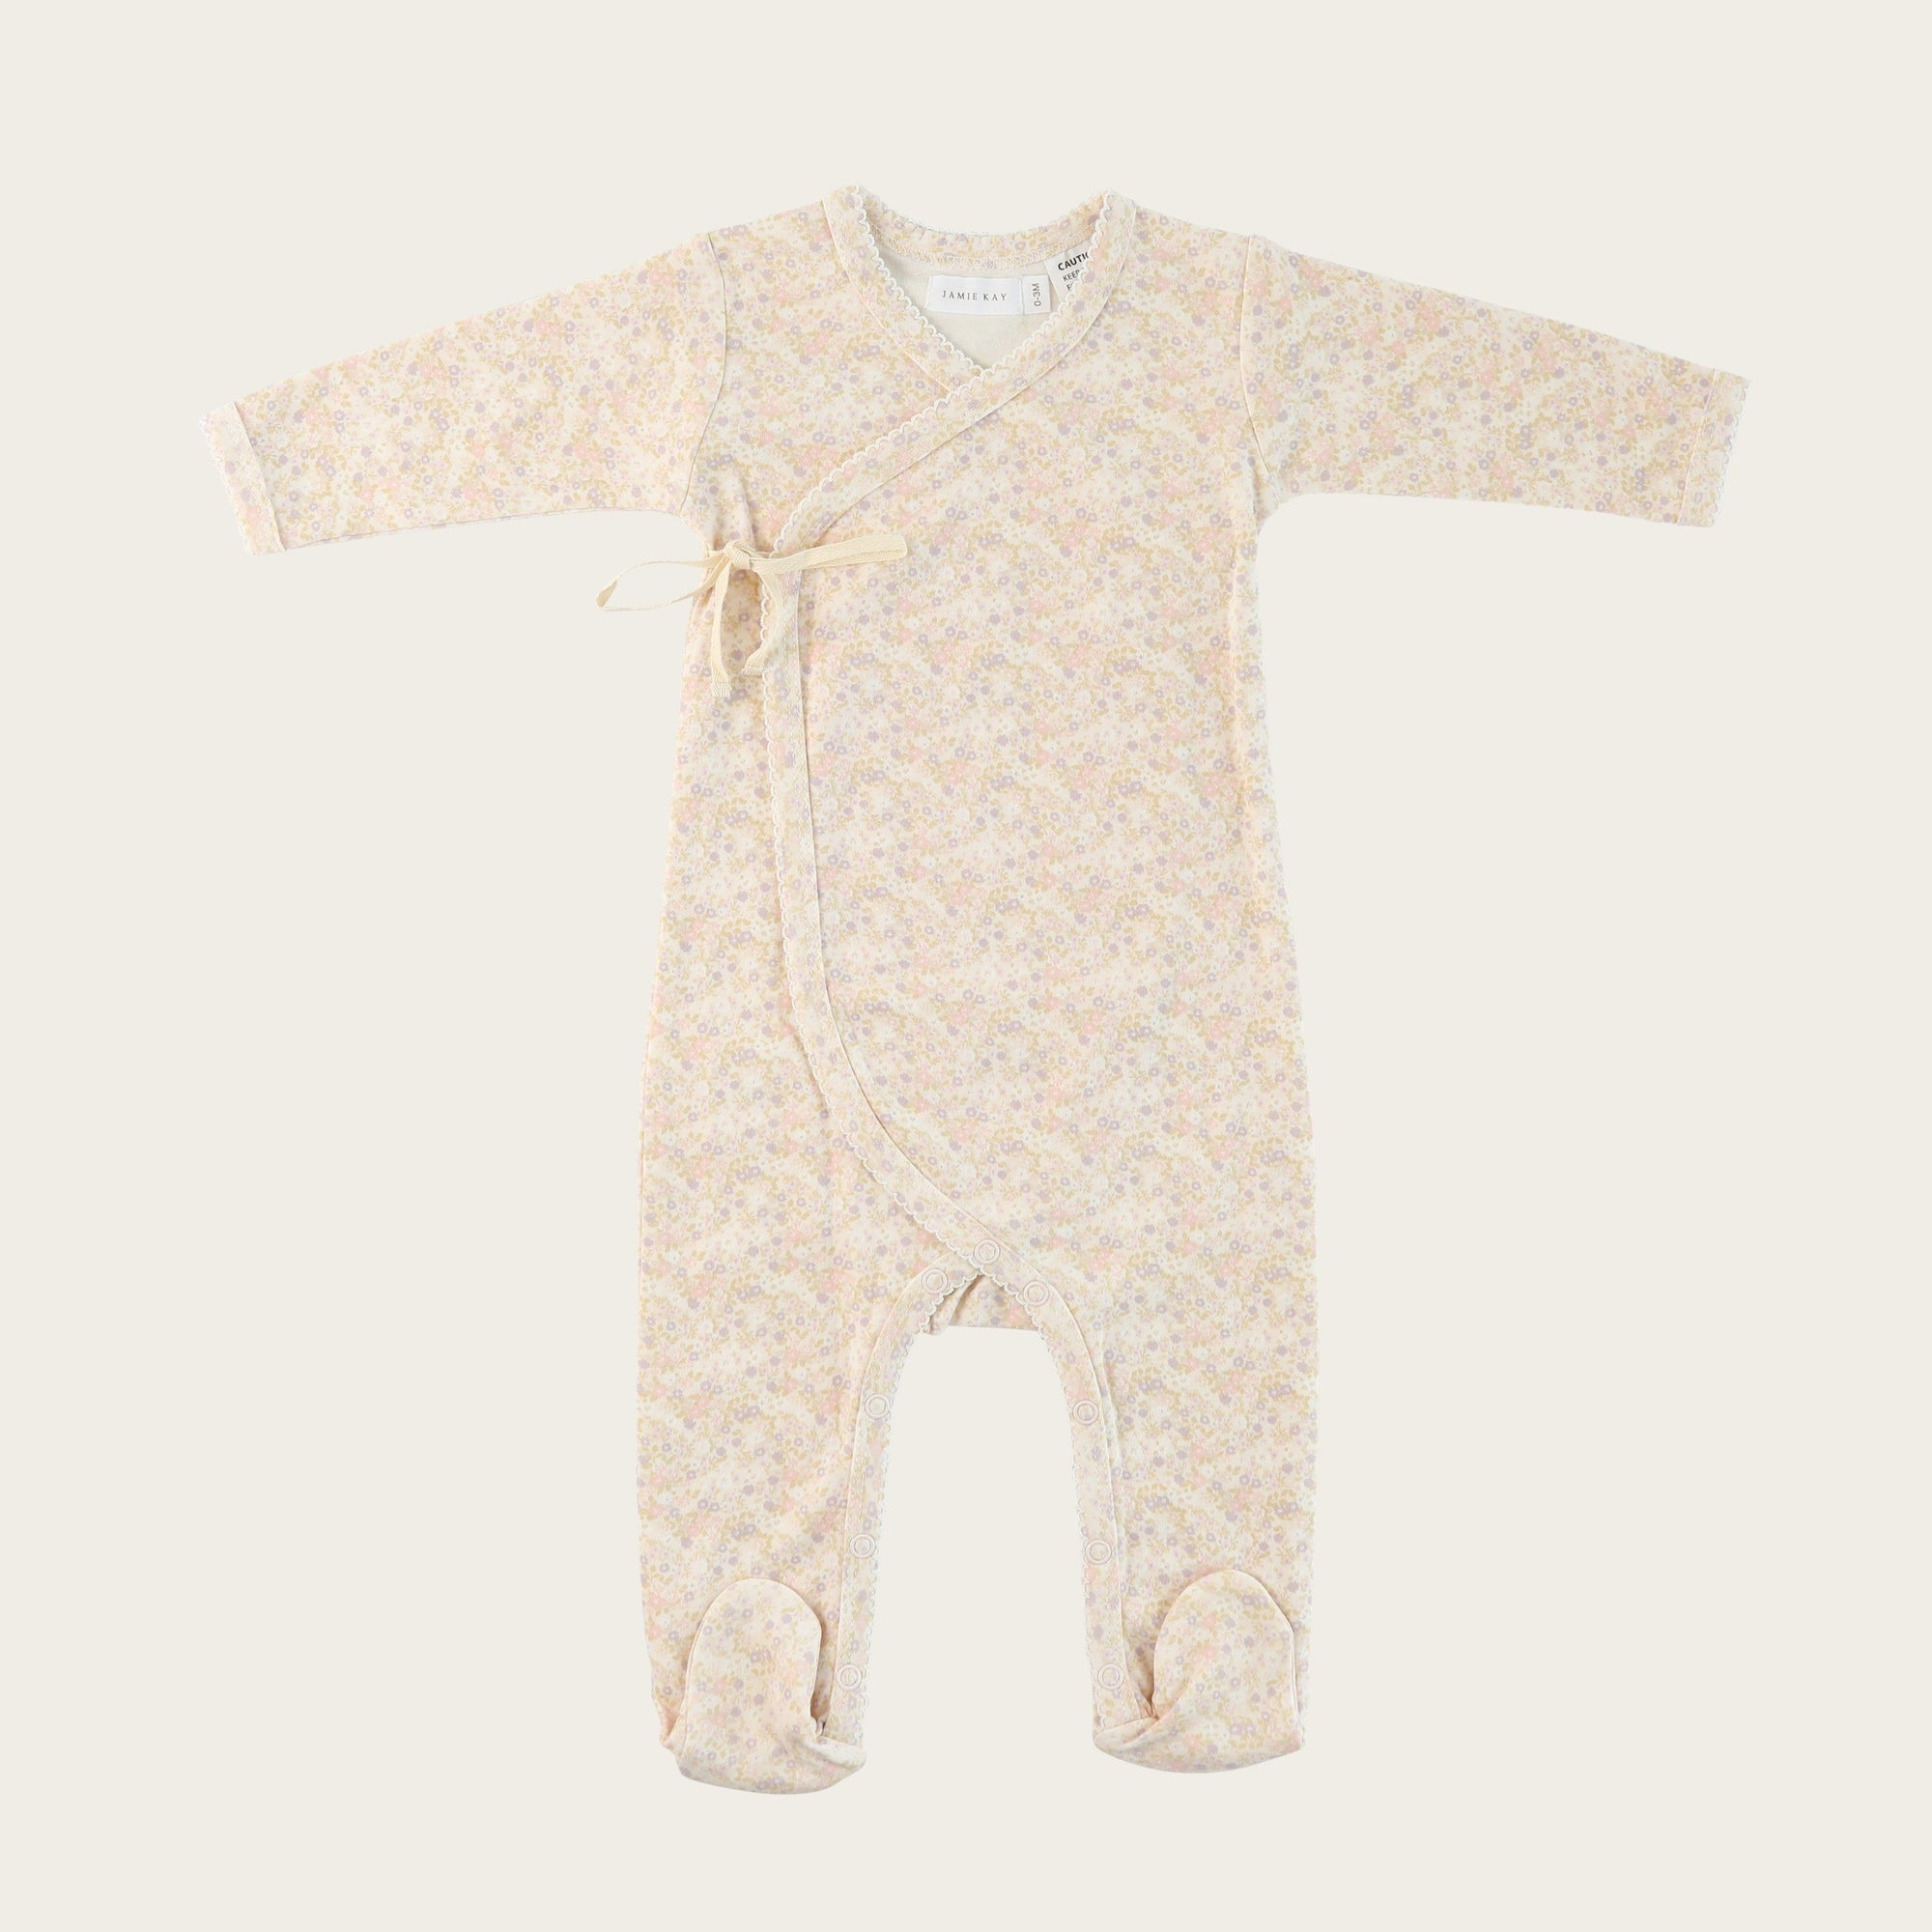 Forget Me Not Wrap Onesie